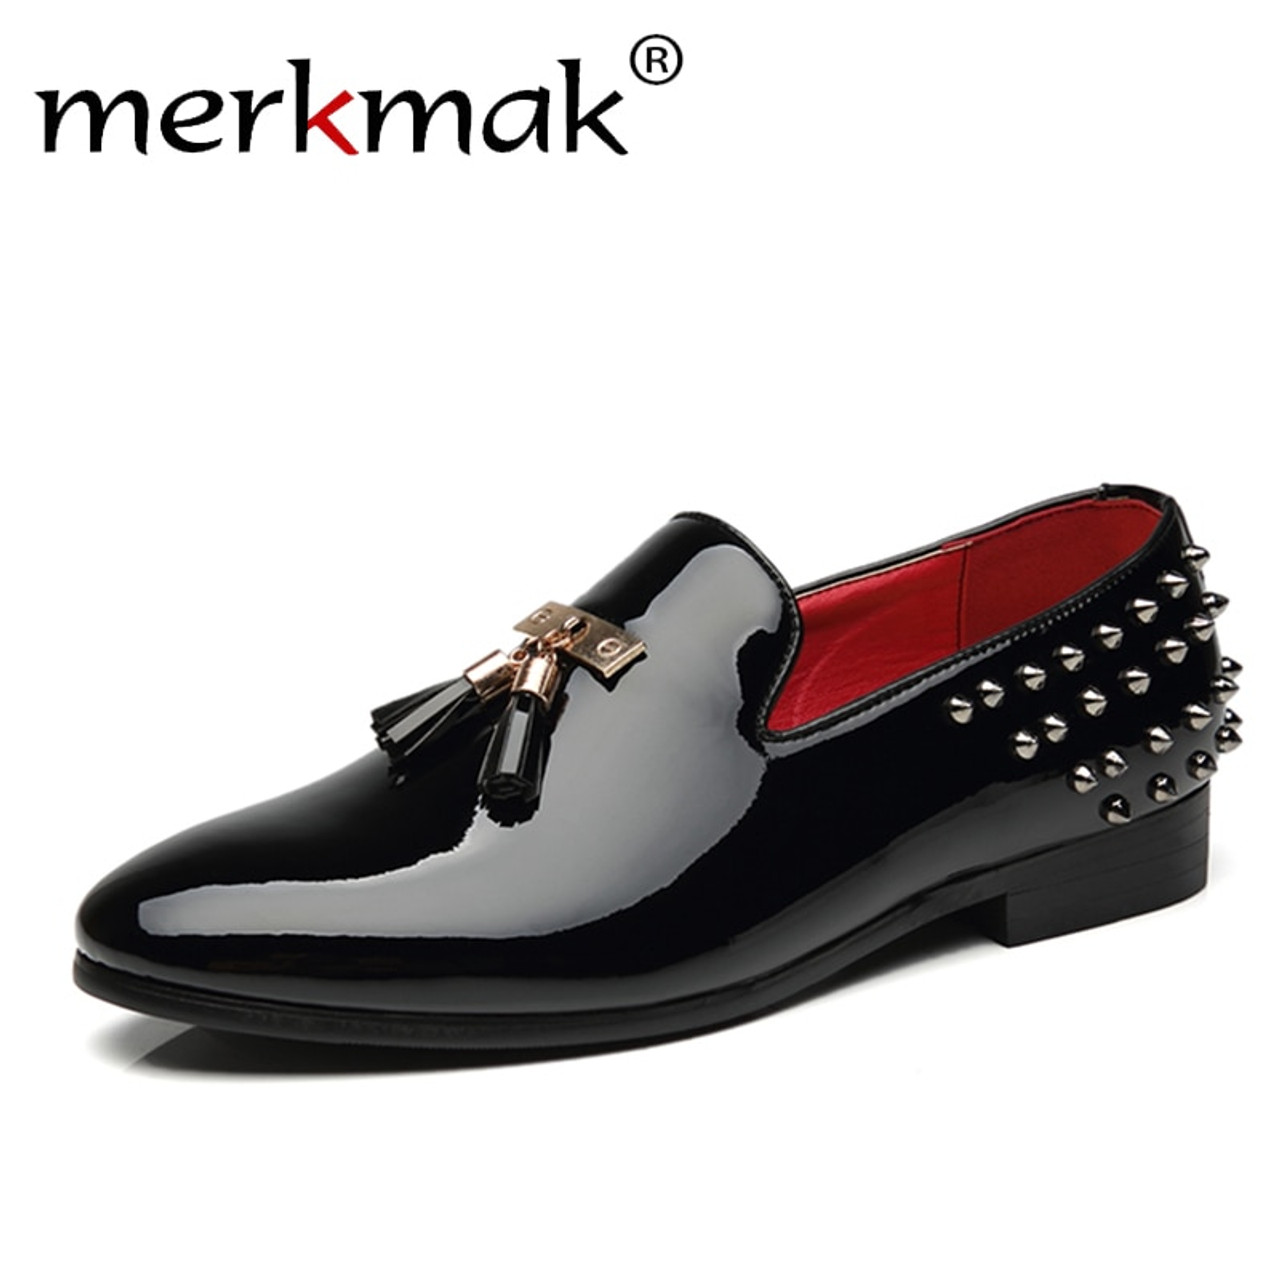 28cab844ec11 2019 New Men S PU Leather Casual Shoes Men Spring Autumn Casual Loafers  Moccasins Brand Luxury ...